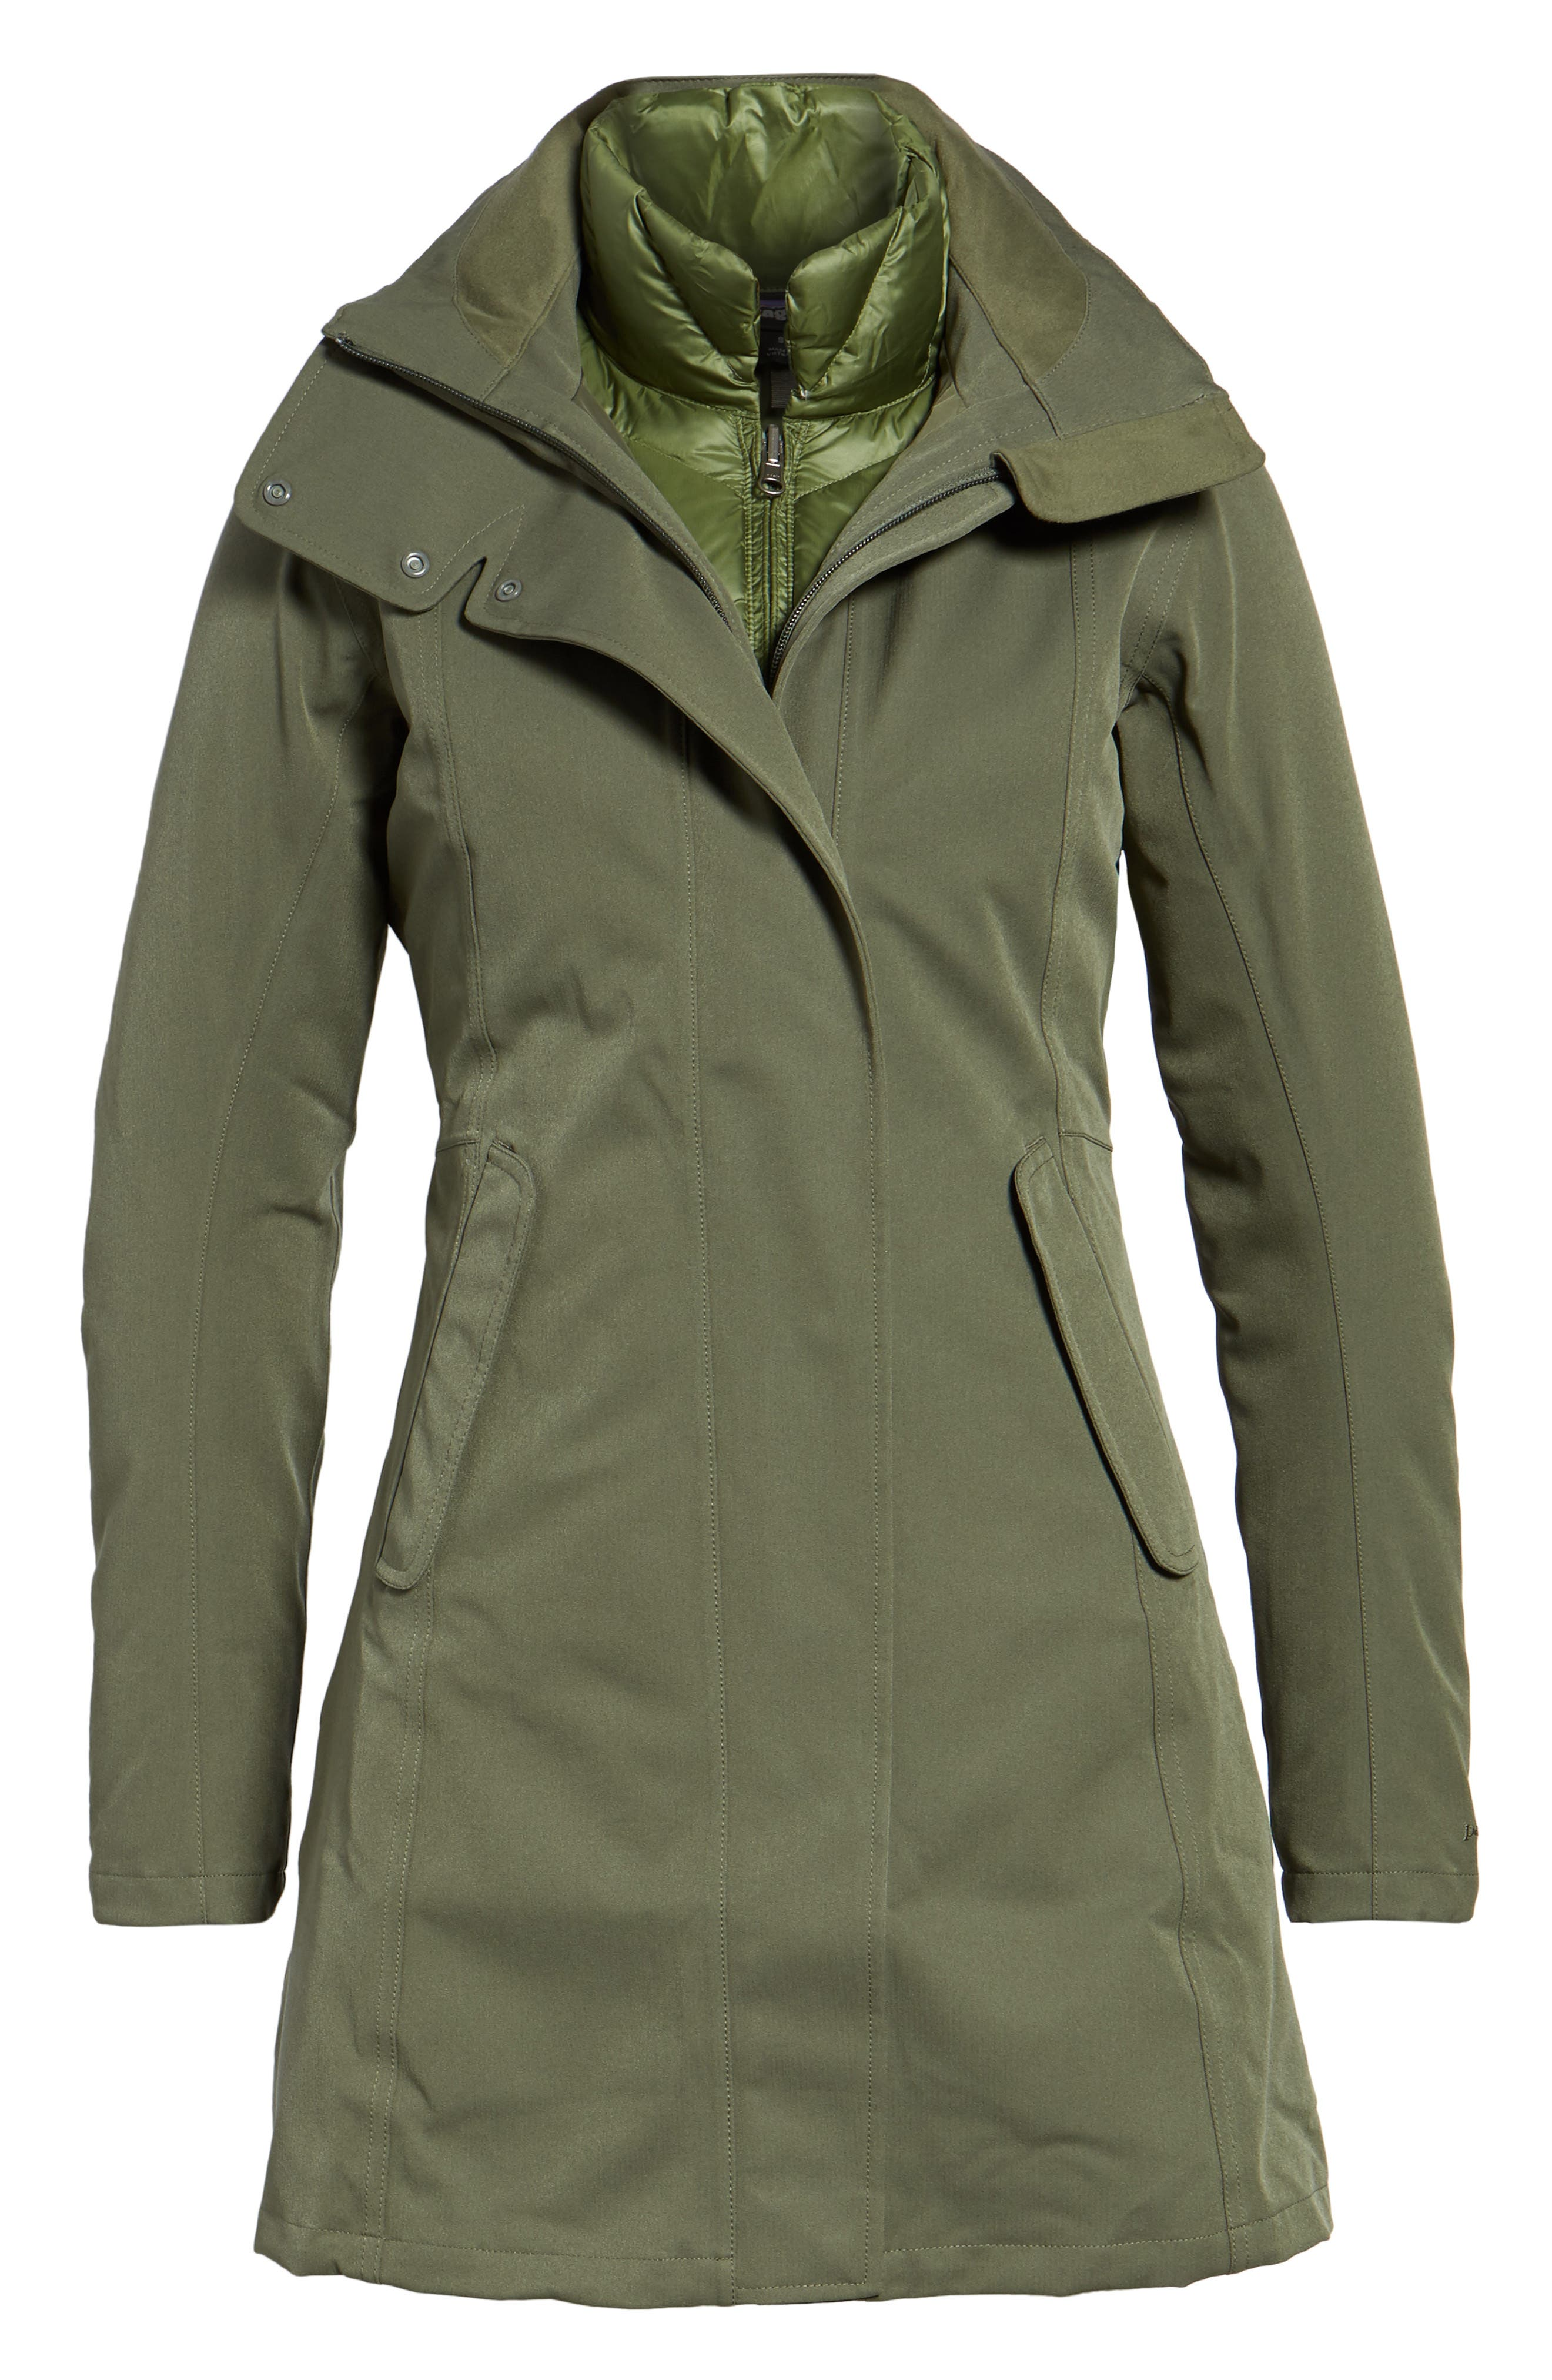 Tres Waterproof 3-in-1 Parka,                             Alternate thumbnail 5, color,                             301